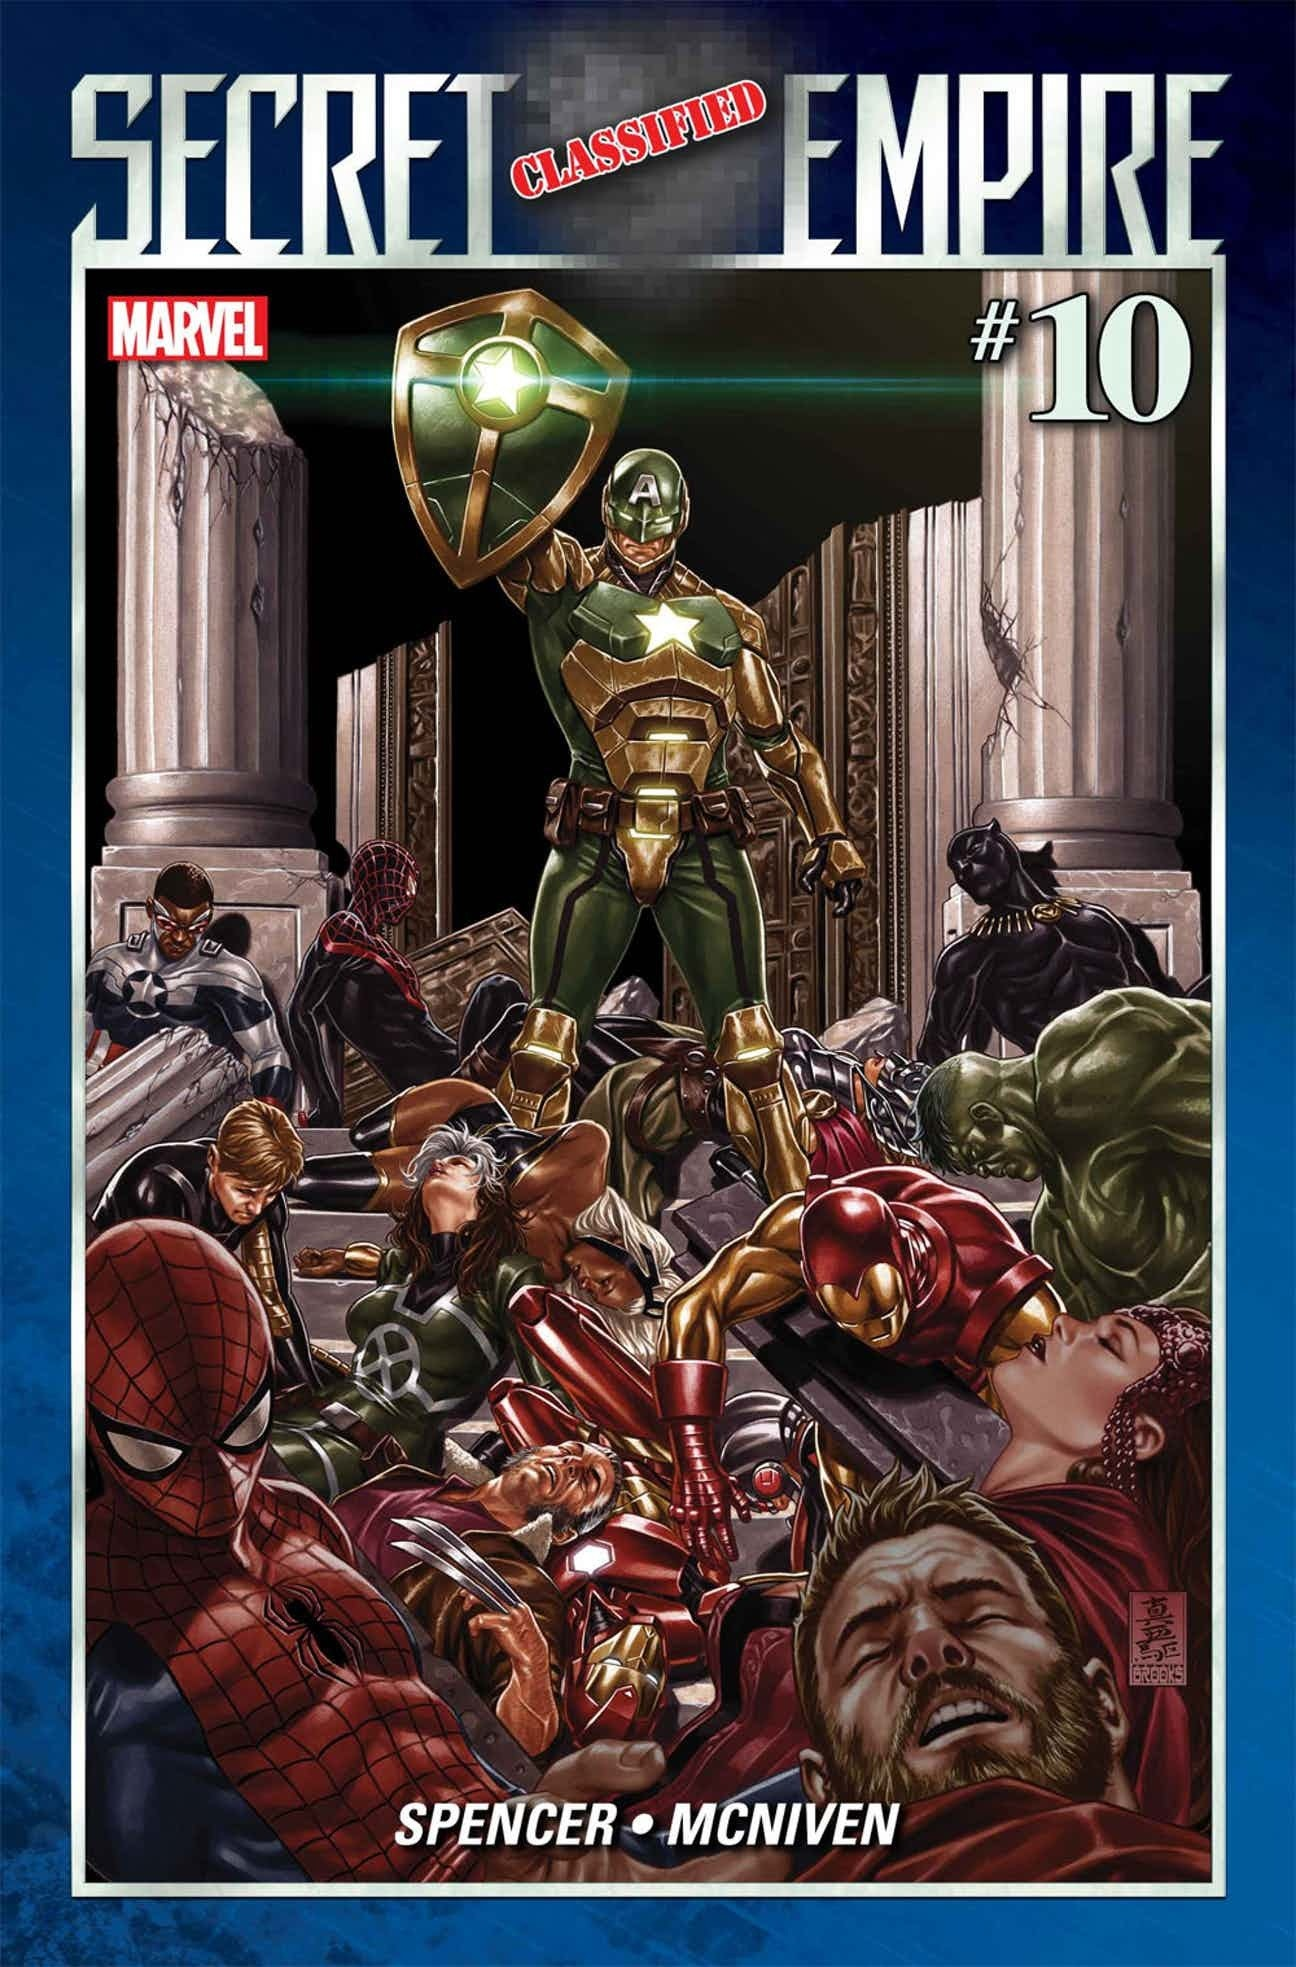 Marvel's 'Secret Empire' #10